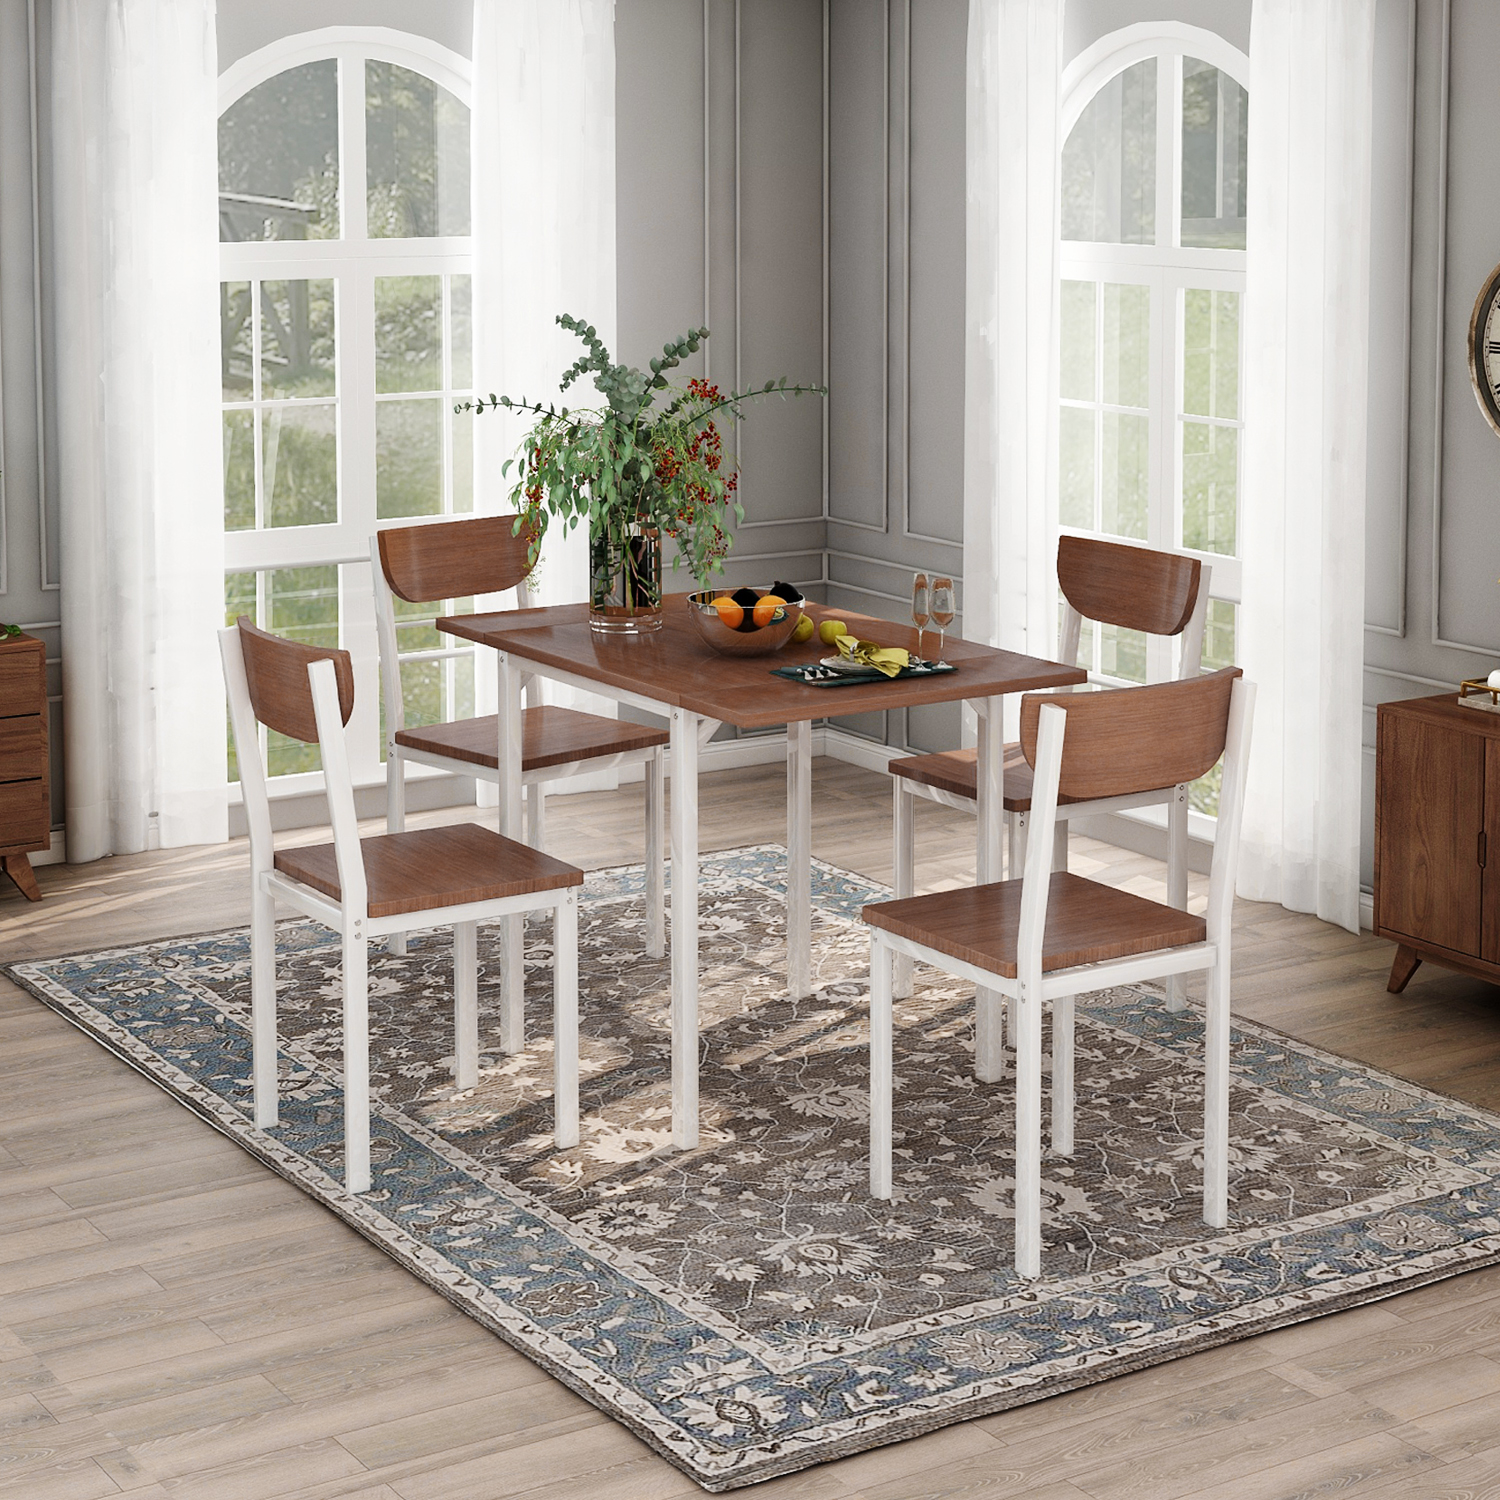 clearance dining room sets clearance kitchen table and 4 chairs set modern metal dining set w 1 drop leaf dining table 2052